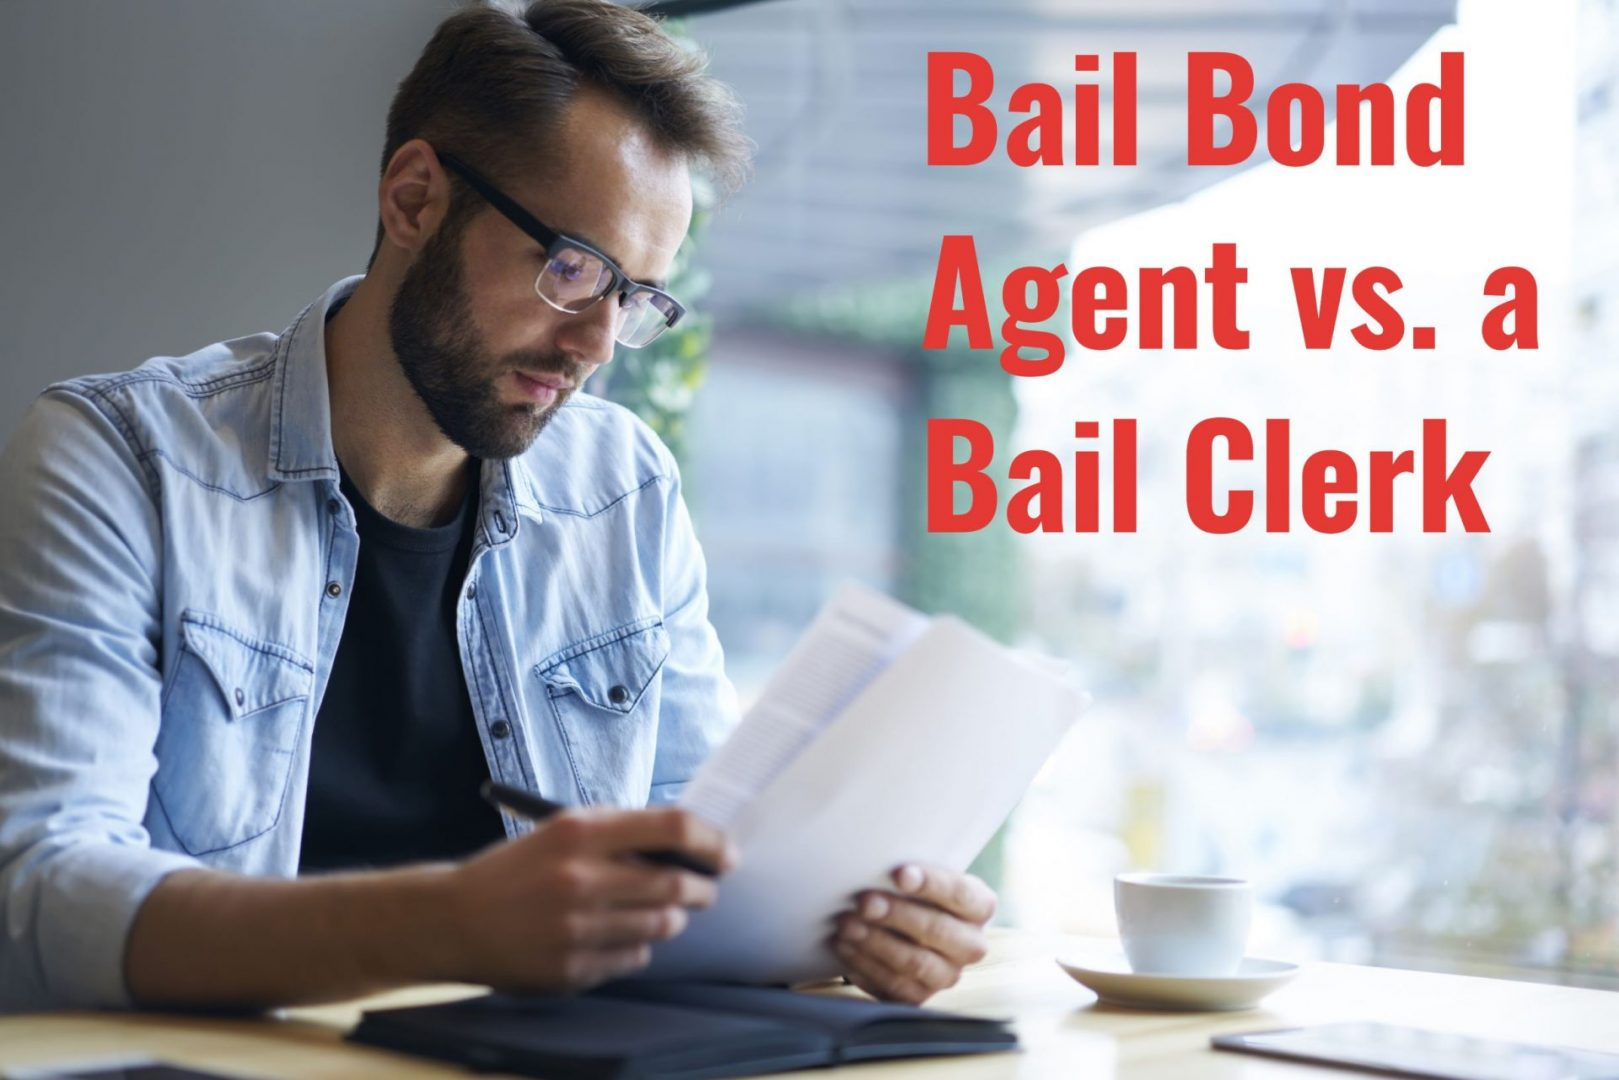 What's The Difference Between A Bail Bond Agent and a Bail Clerk?